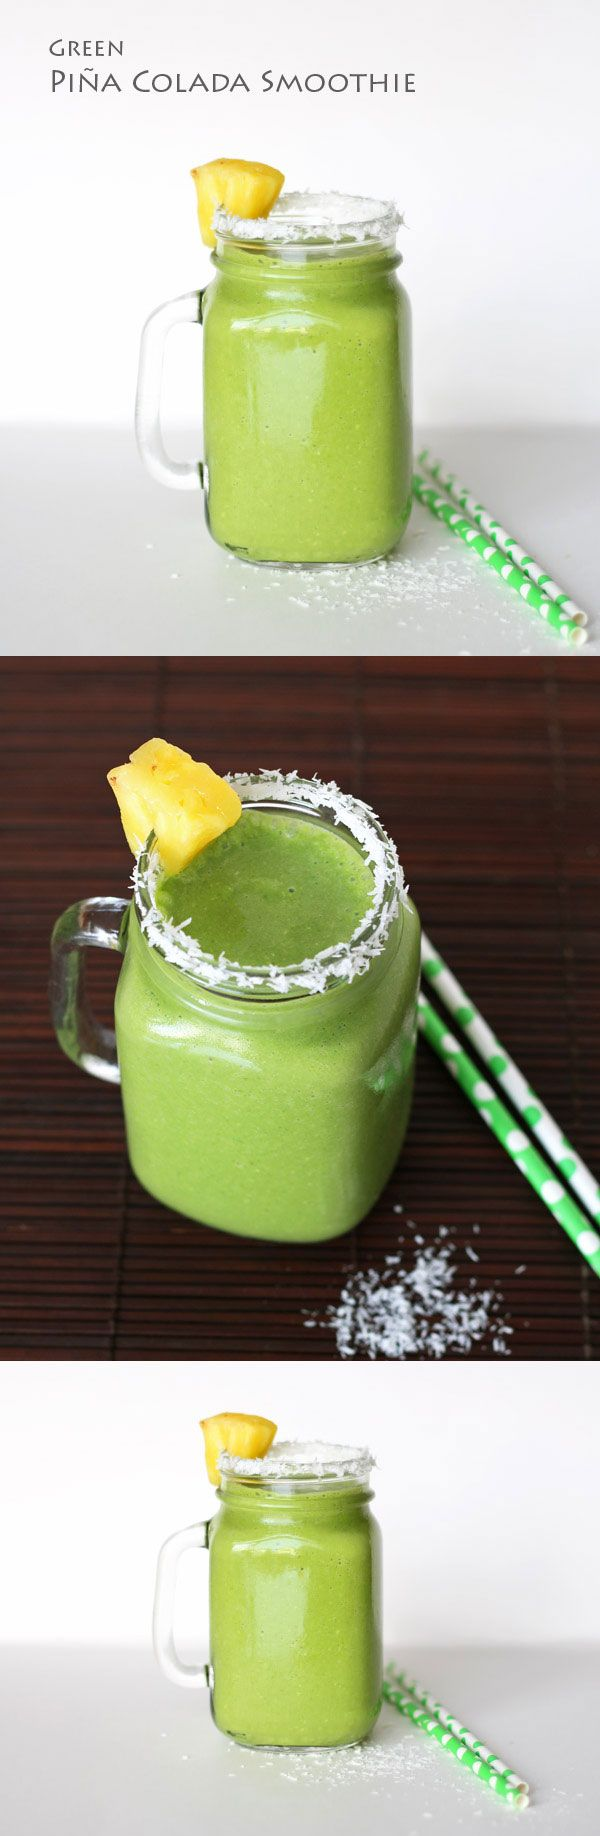 Green Pina Colada Smoothie - a super tasty and healthy green smoothie ...